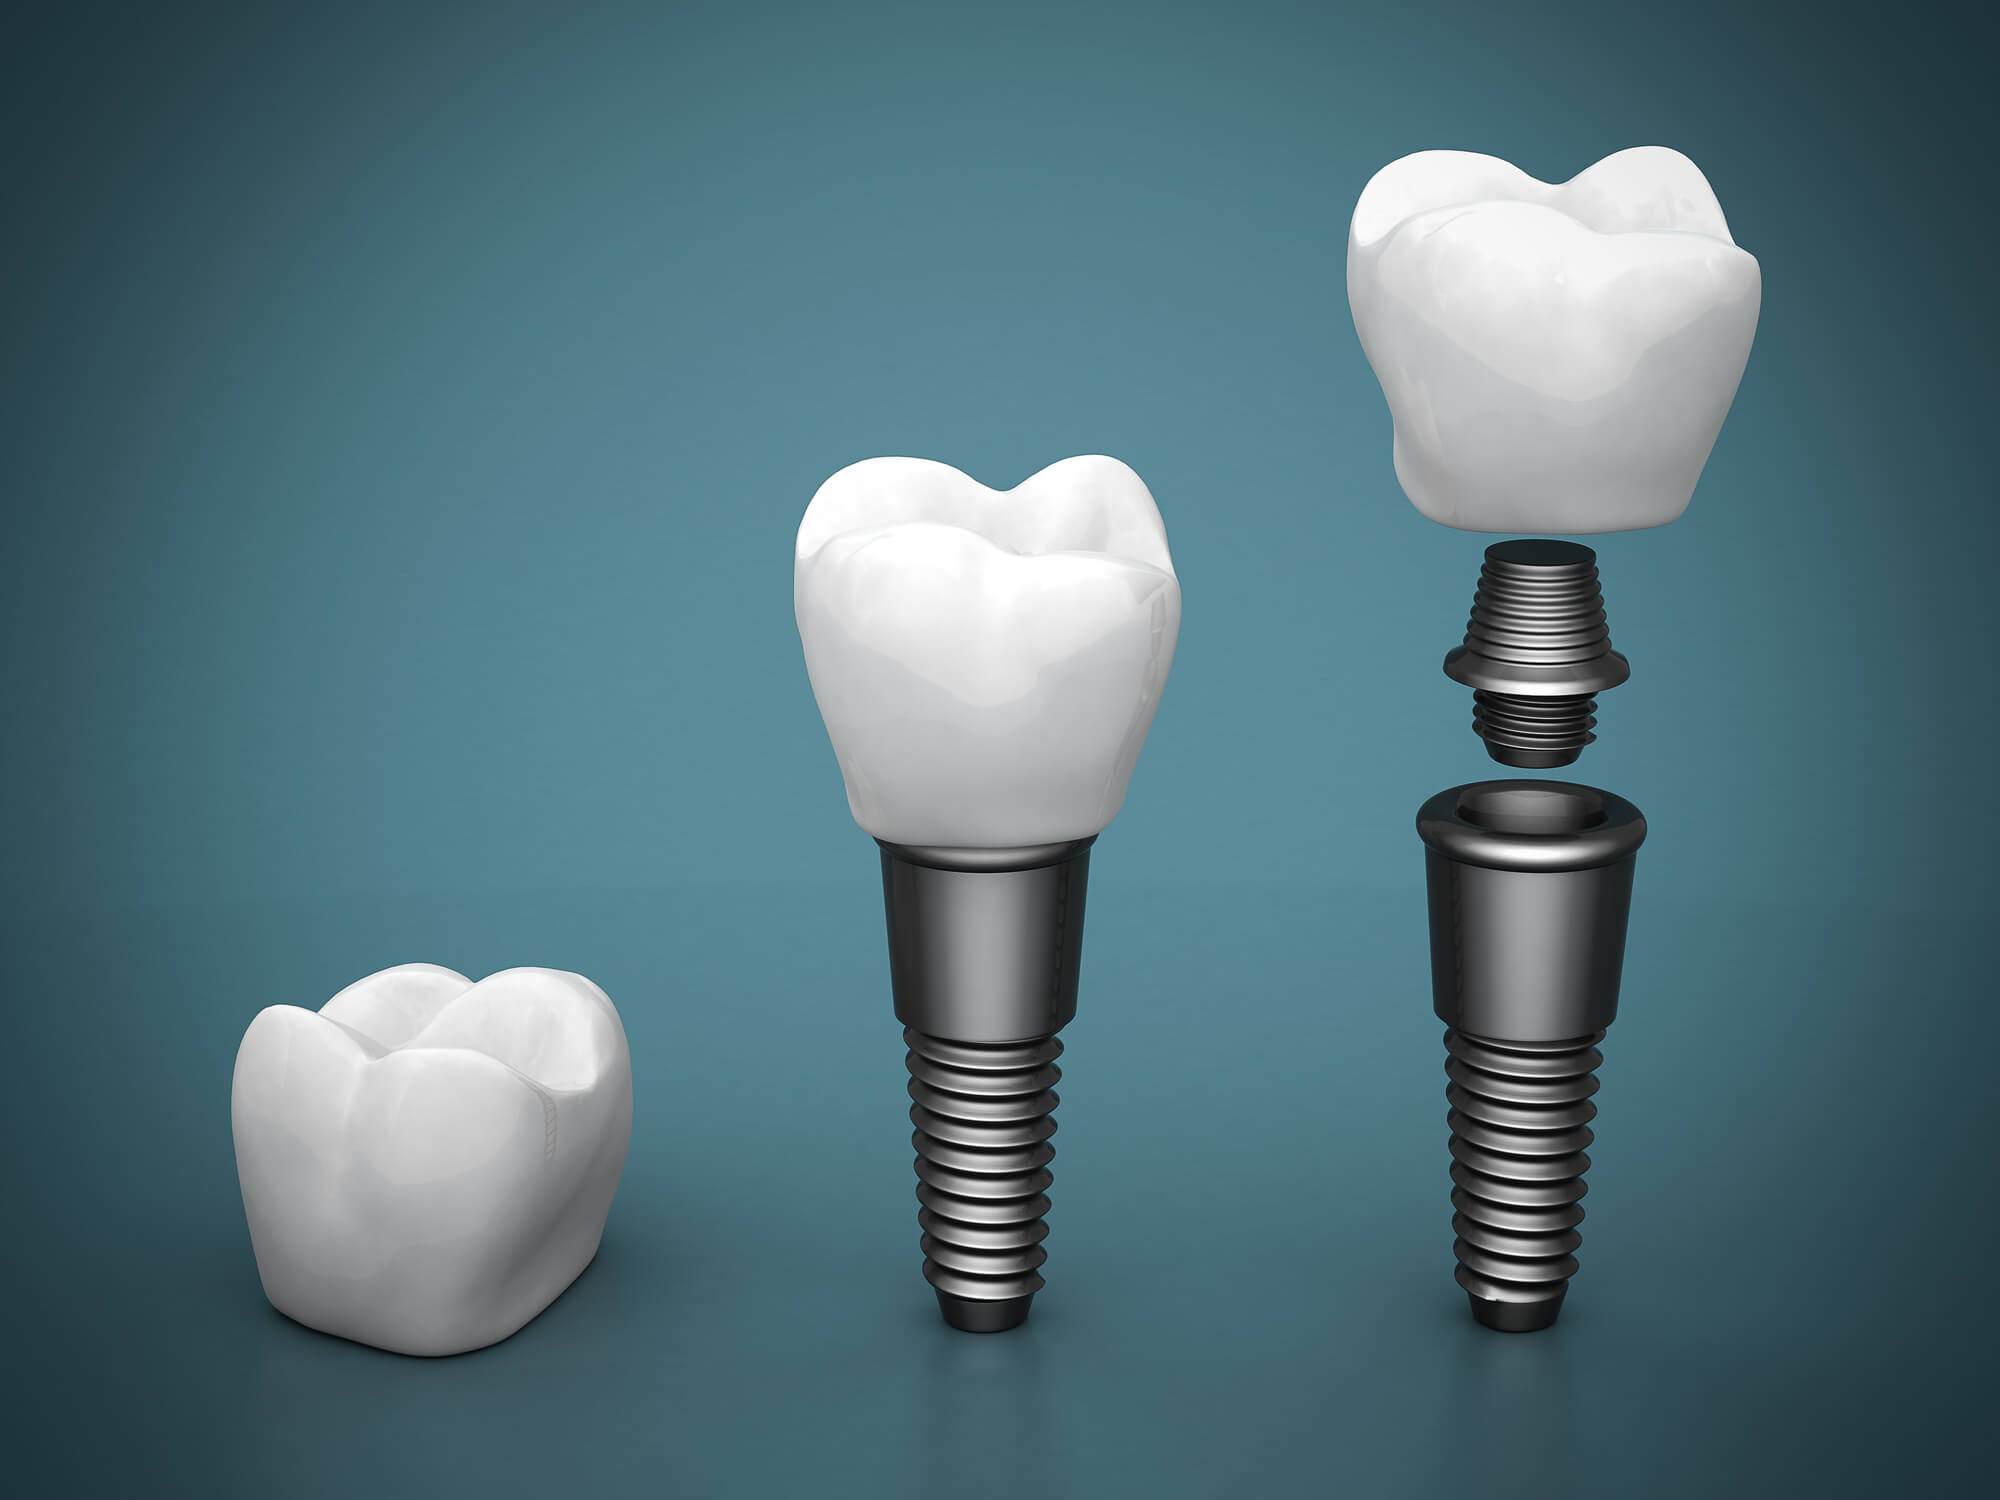 Best dentists for dental implants in Pembroke Pines